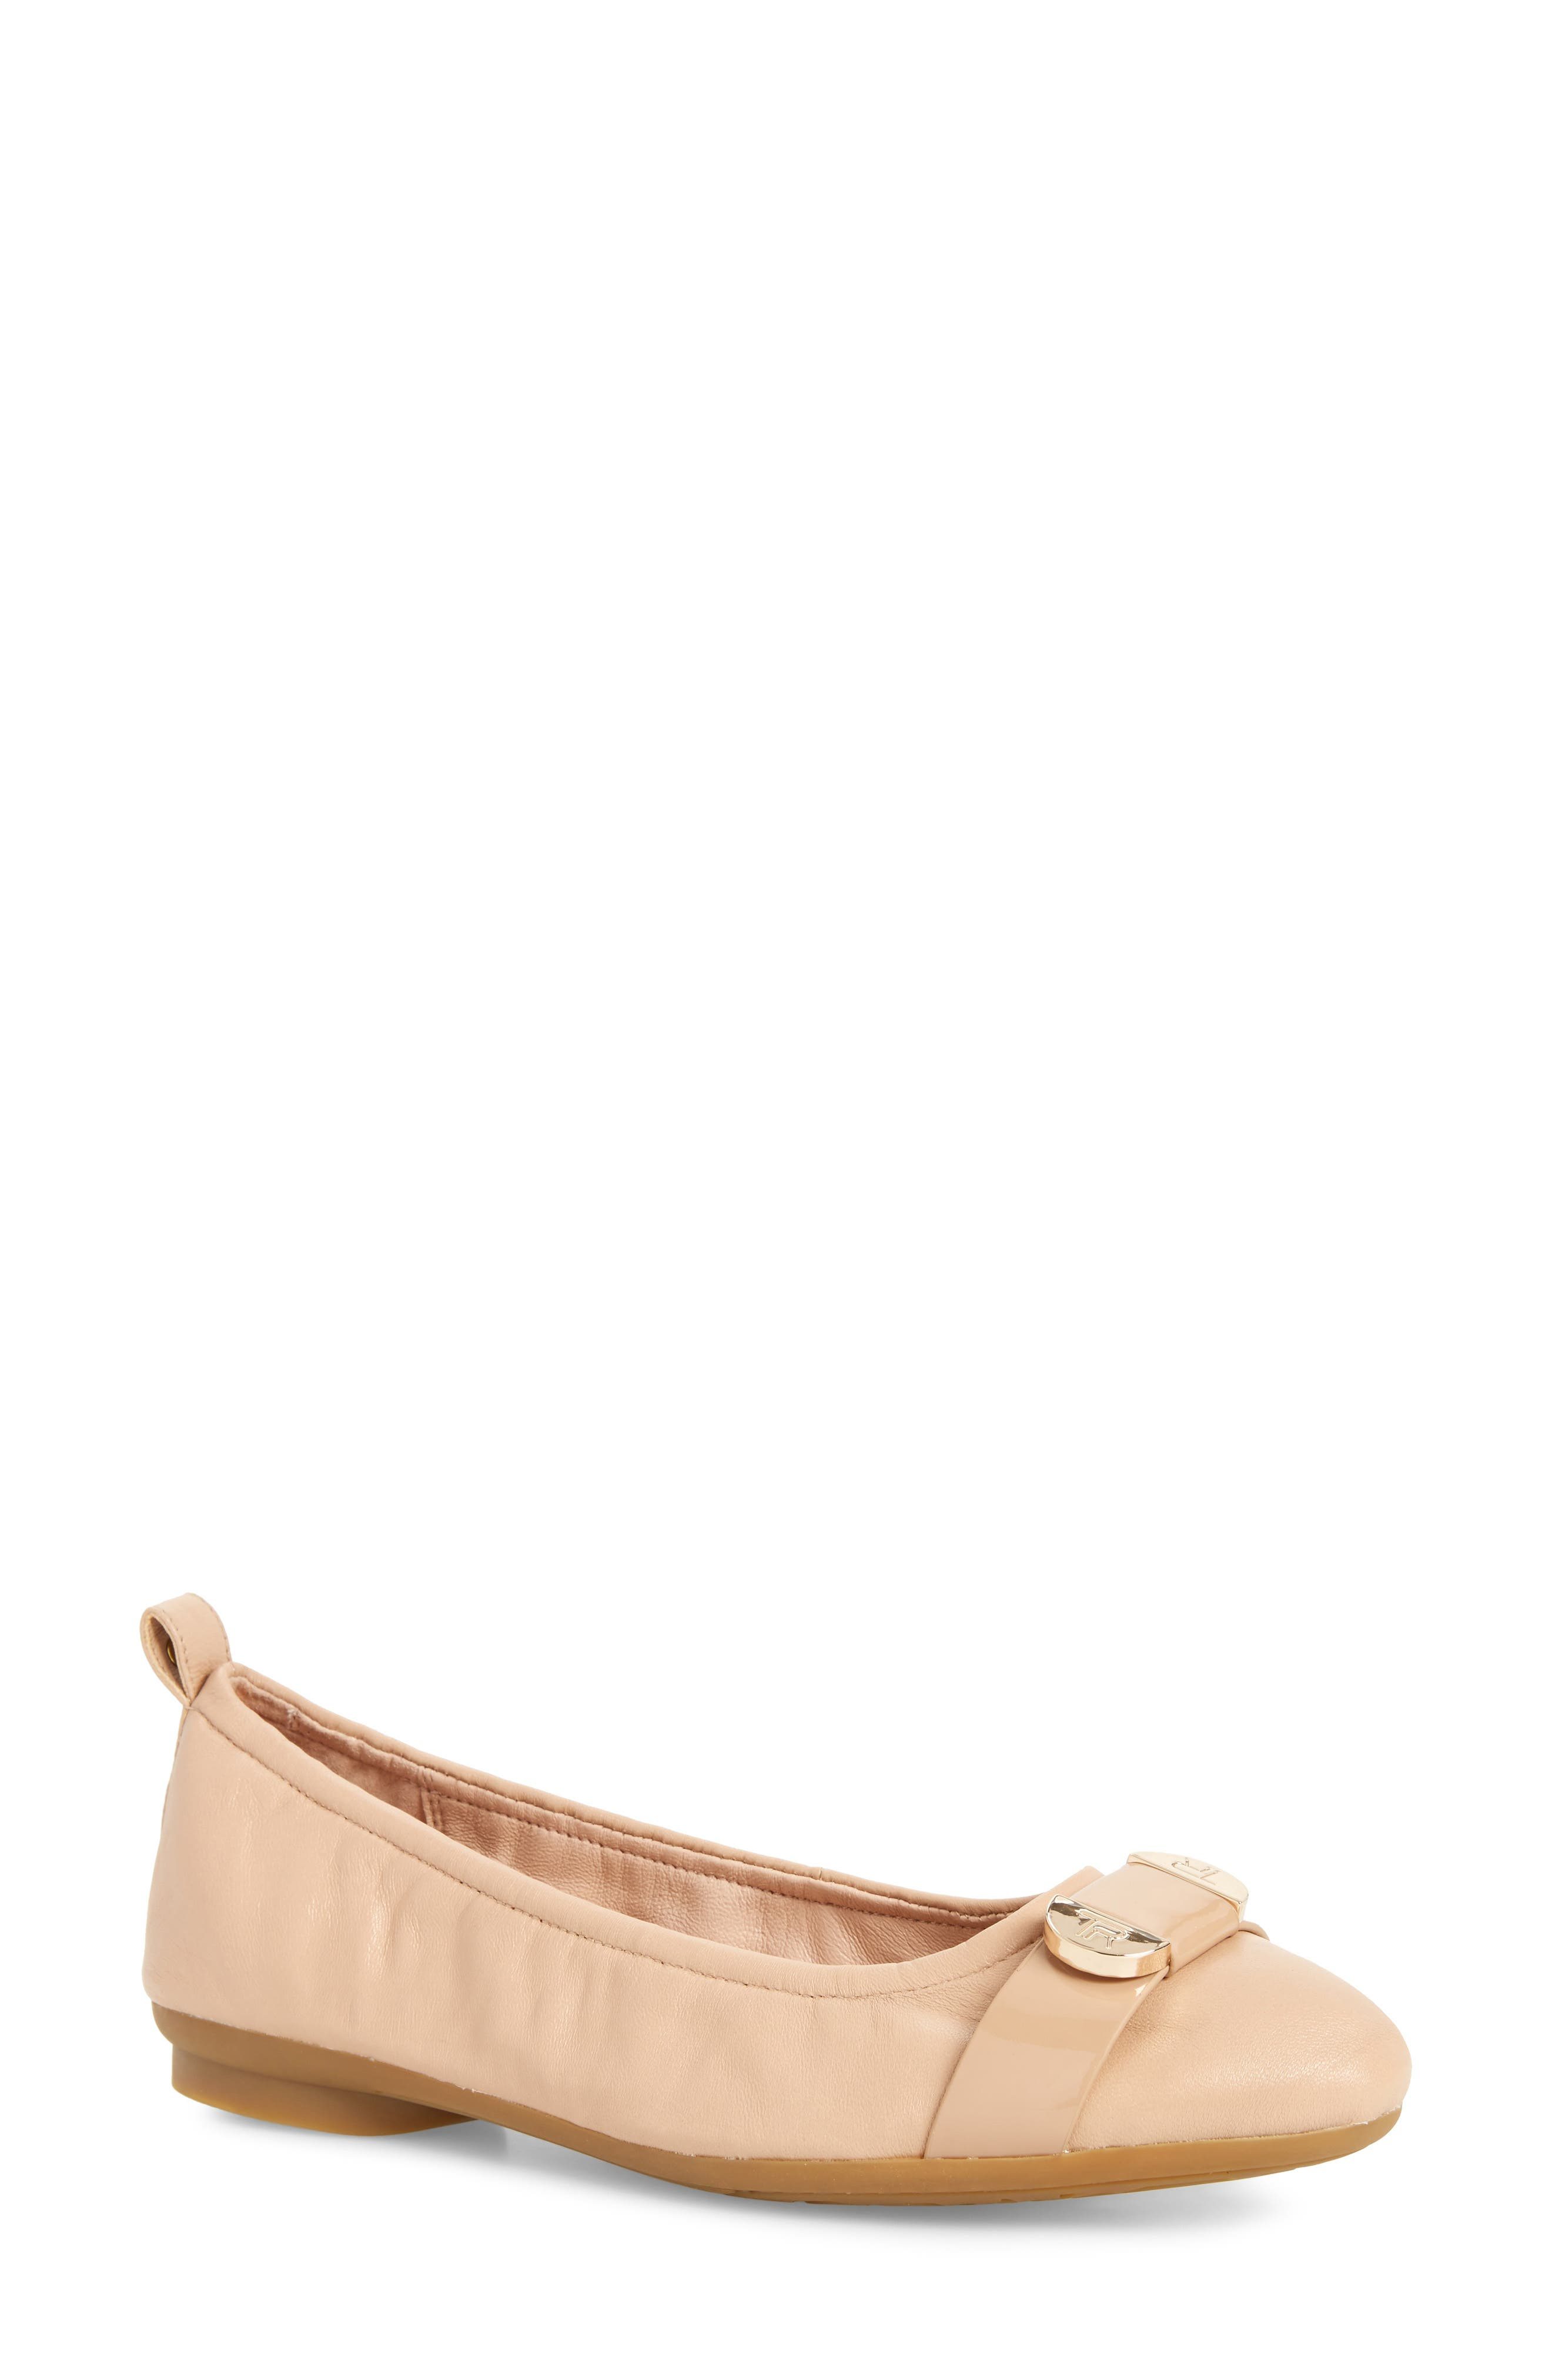 Abriana Ballet Flat,                             Main thumbnail 1, color,                             Nude Leather